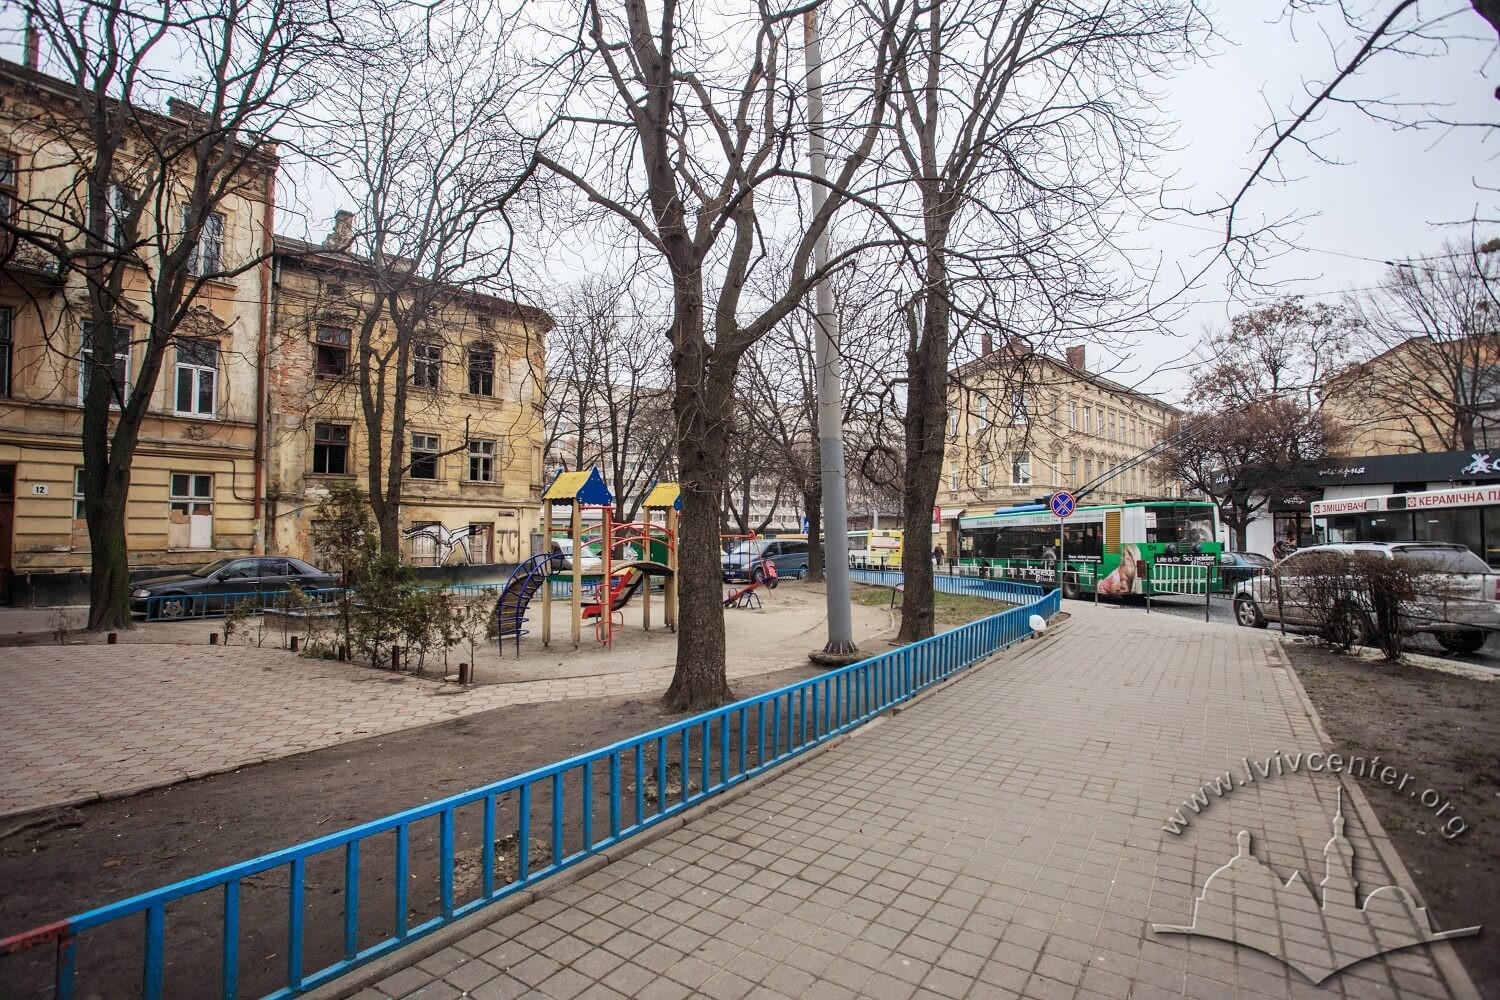 Pl. Rizni. On this square, the city slaughterhouse stood until mid-19th century. On the left – former Gęsia/Goose str. (now vul. Staromiska), behind the trees on the background – the Lviv Hotel on prosp. Chornovola/Photo courtesy of Nazarii Parkhomyk, 2015